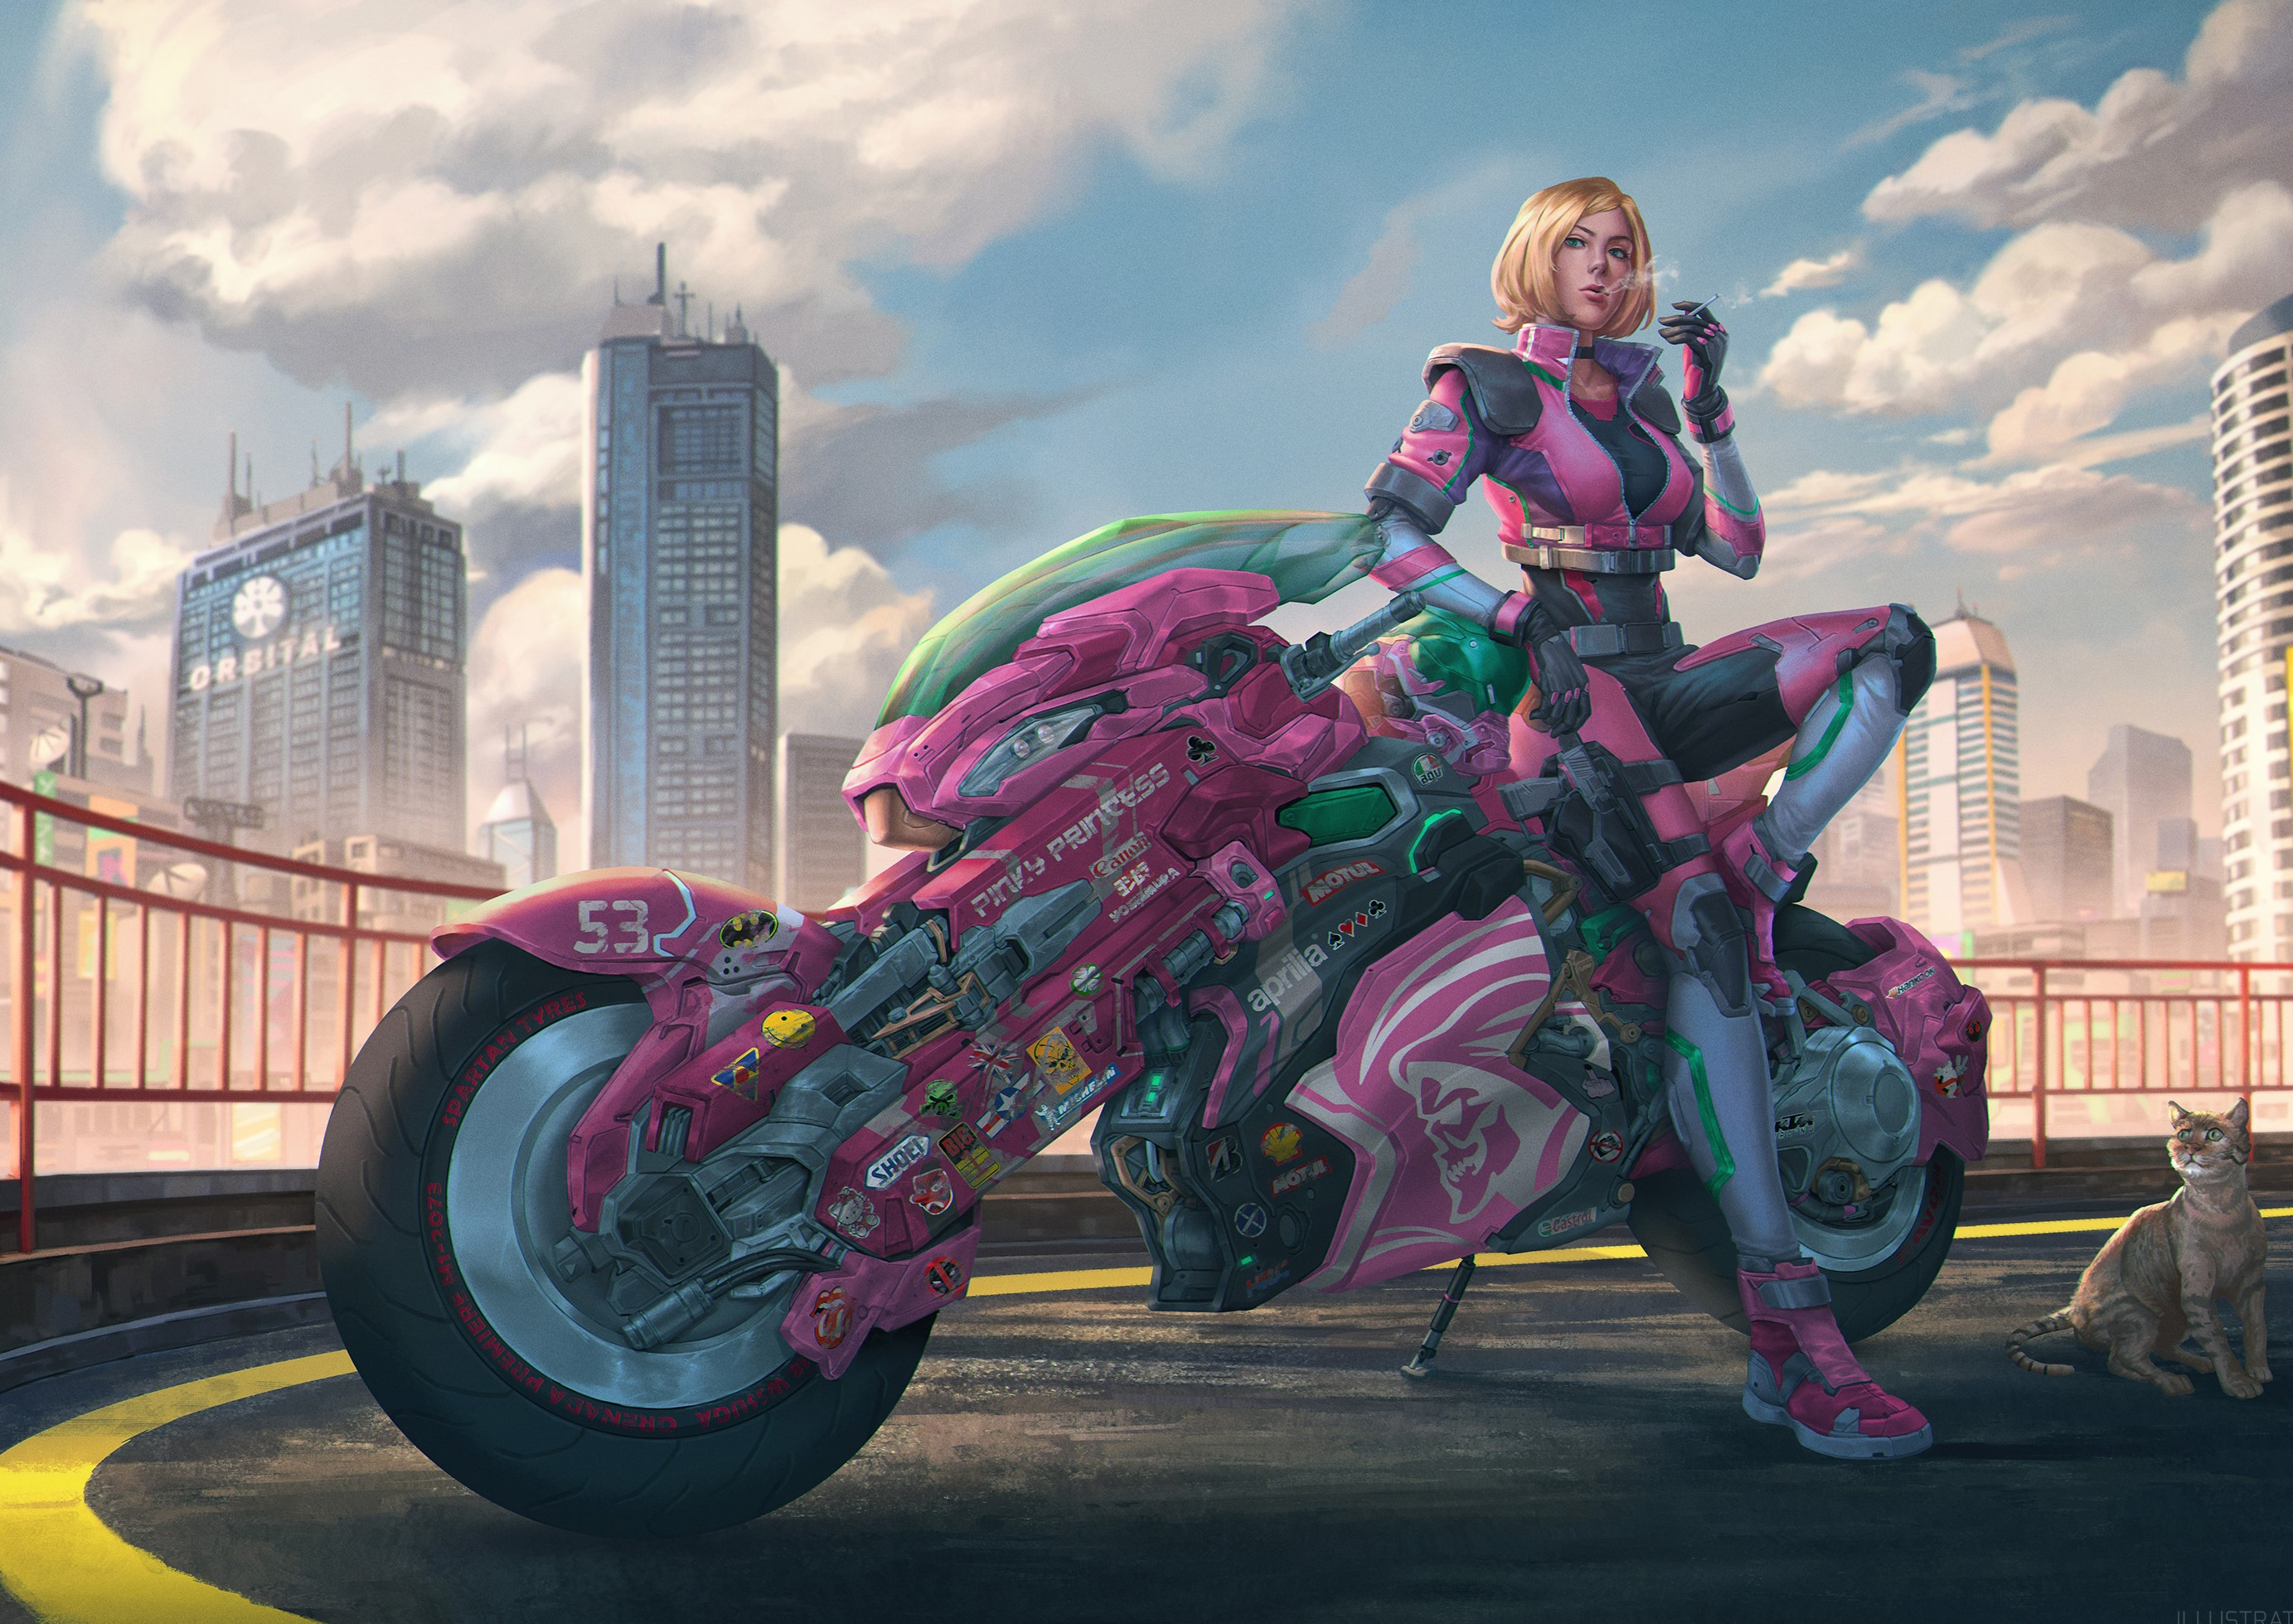 manga-punk-scifi-anime-motorcycle-girl-xc.jpg